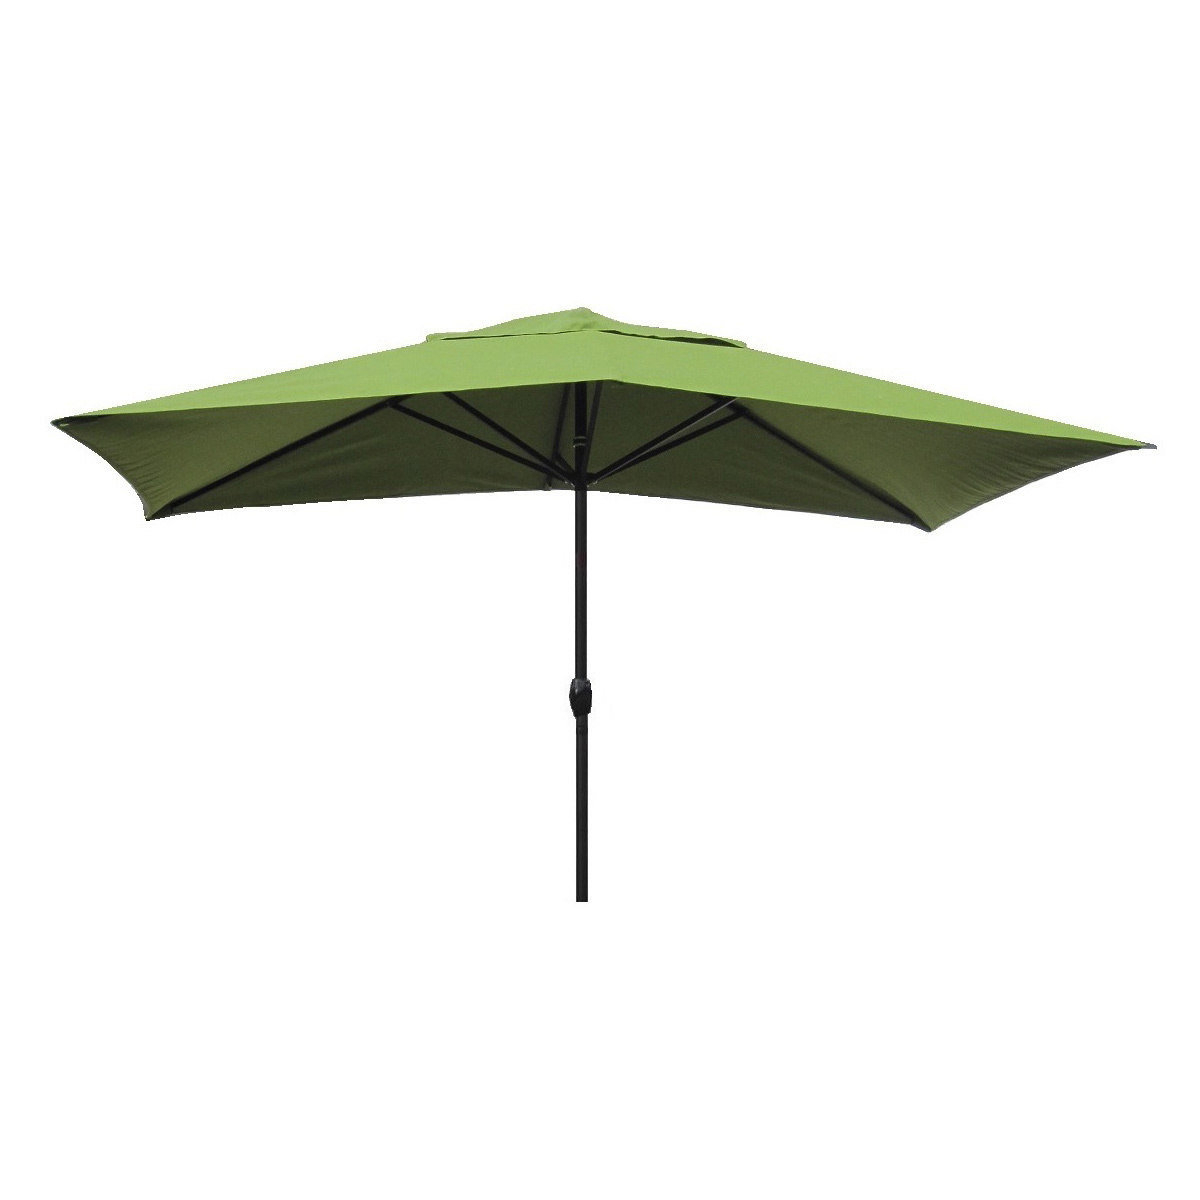 Gries Rectangular Market Umbrellas Pertaining To 2020 Gries 10' X 6' Rectangular Market Umbrella (View 1 of 20)